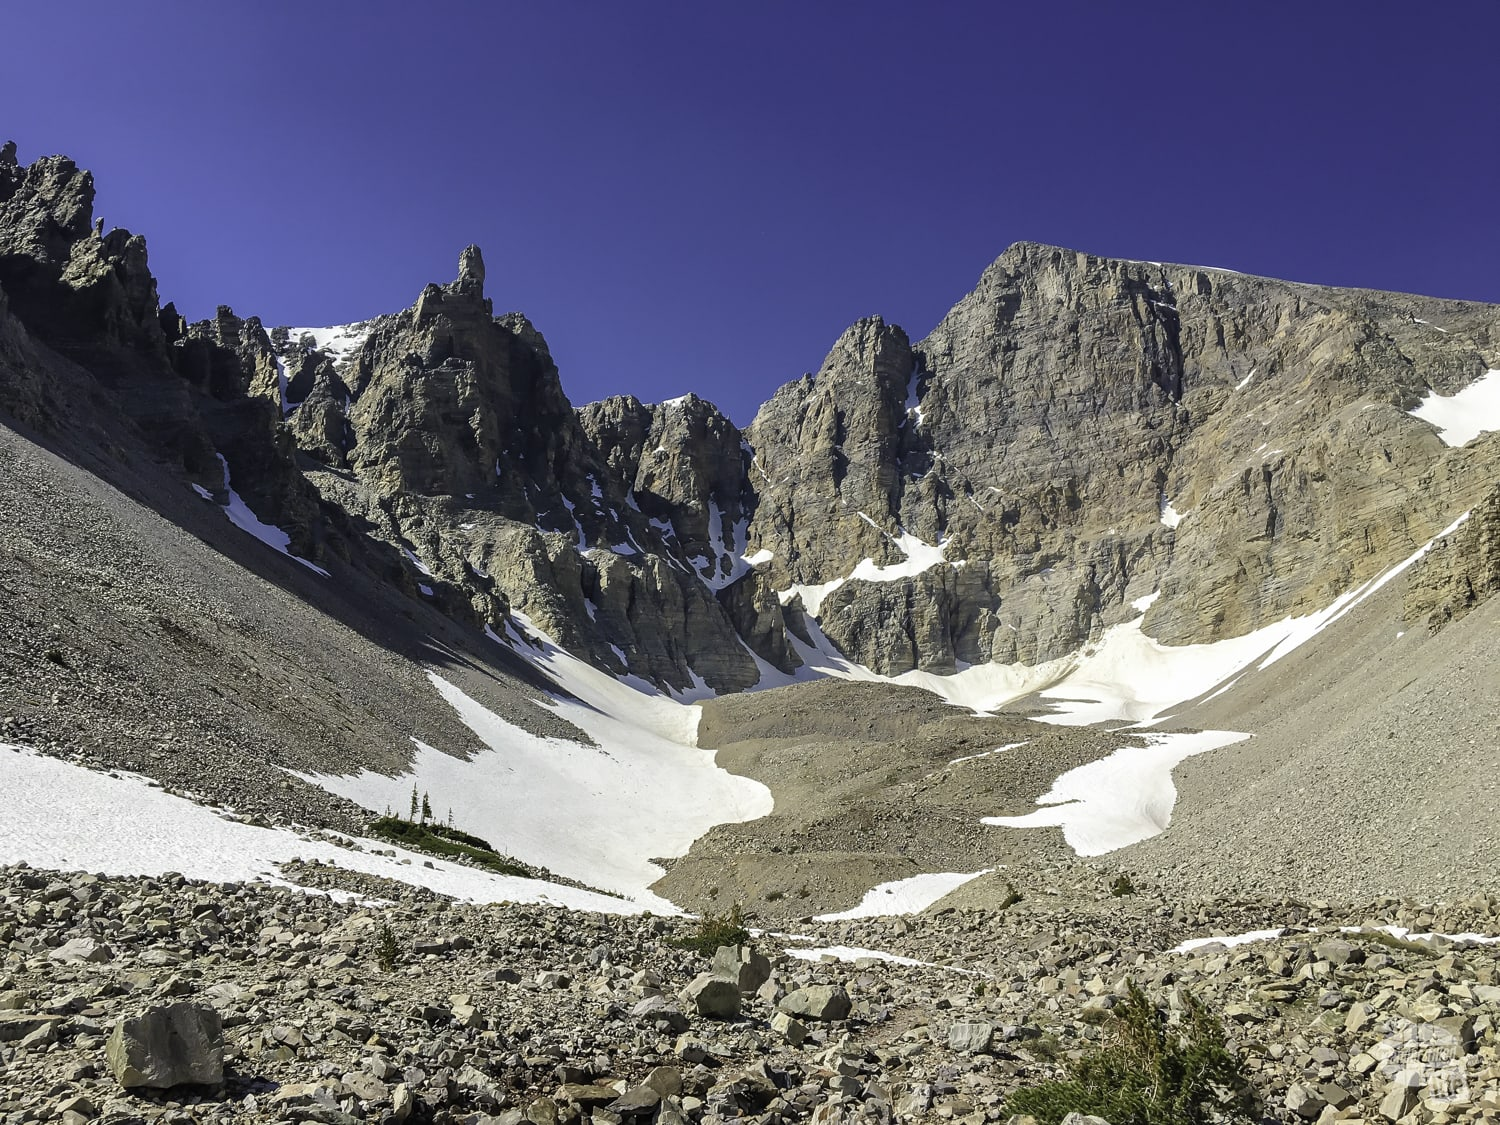 A glacier is one unique feature in Great Basin NP.